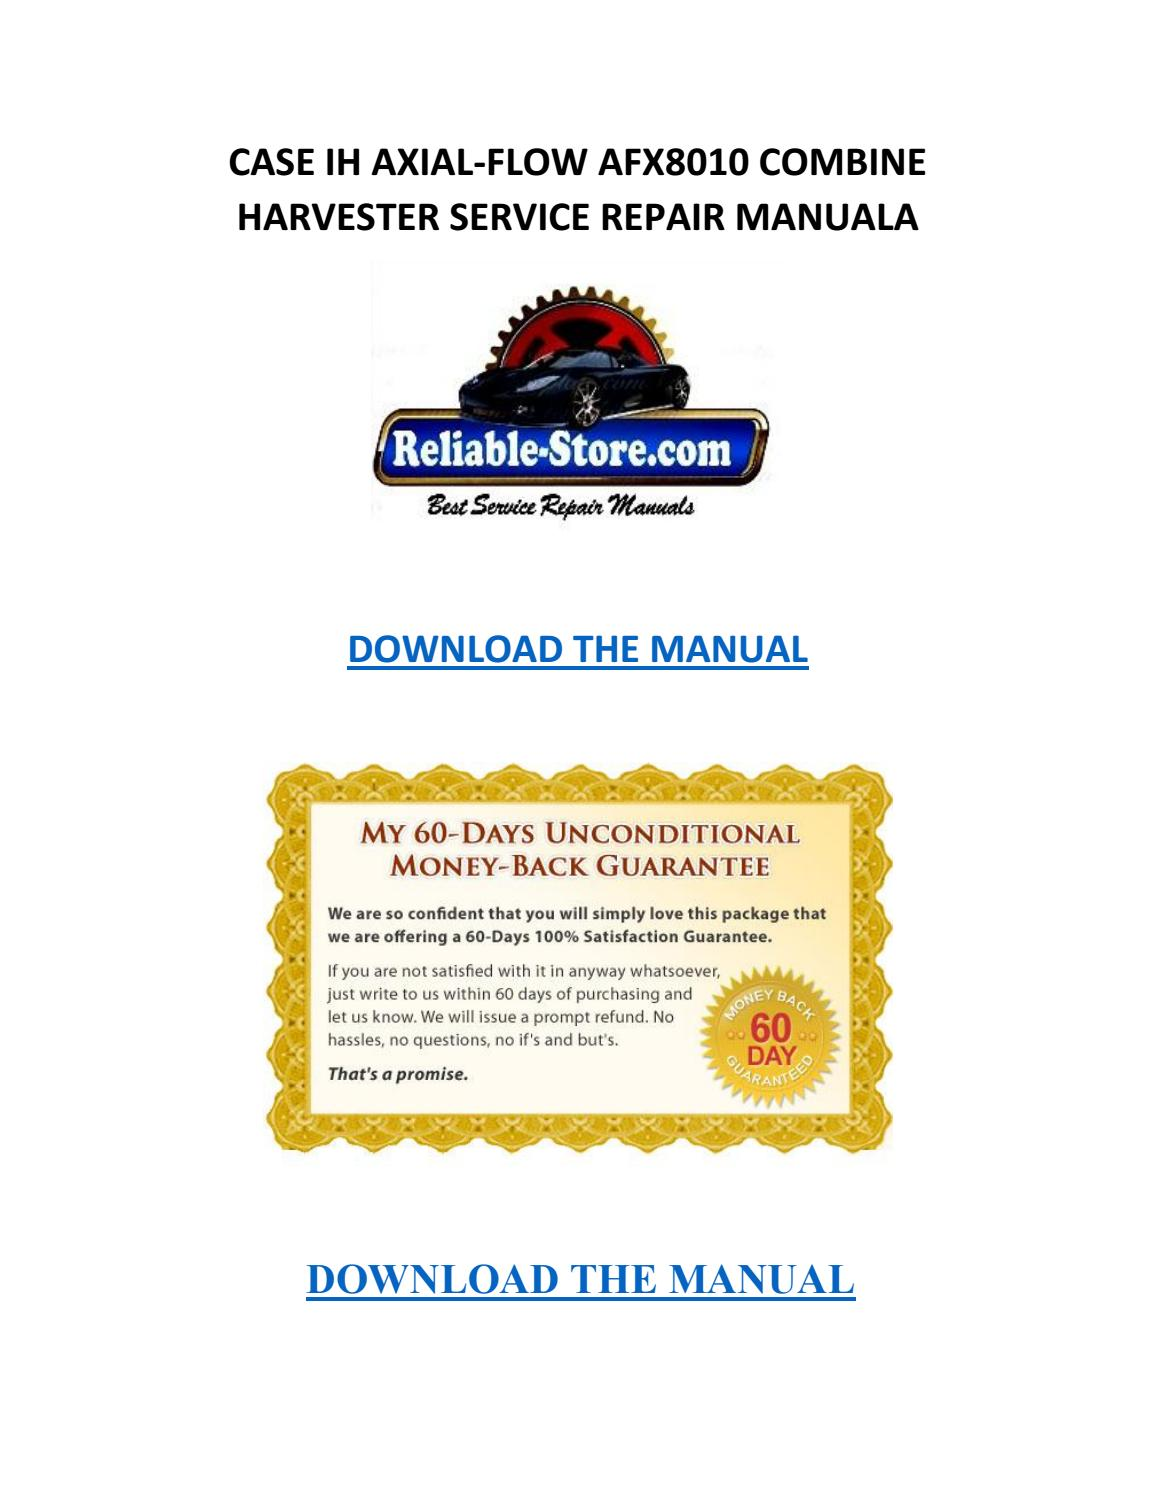 Case ih axial flow afx8010 combine harvester service repair manual by  Willie Blakely - issuu